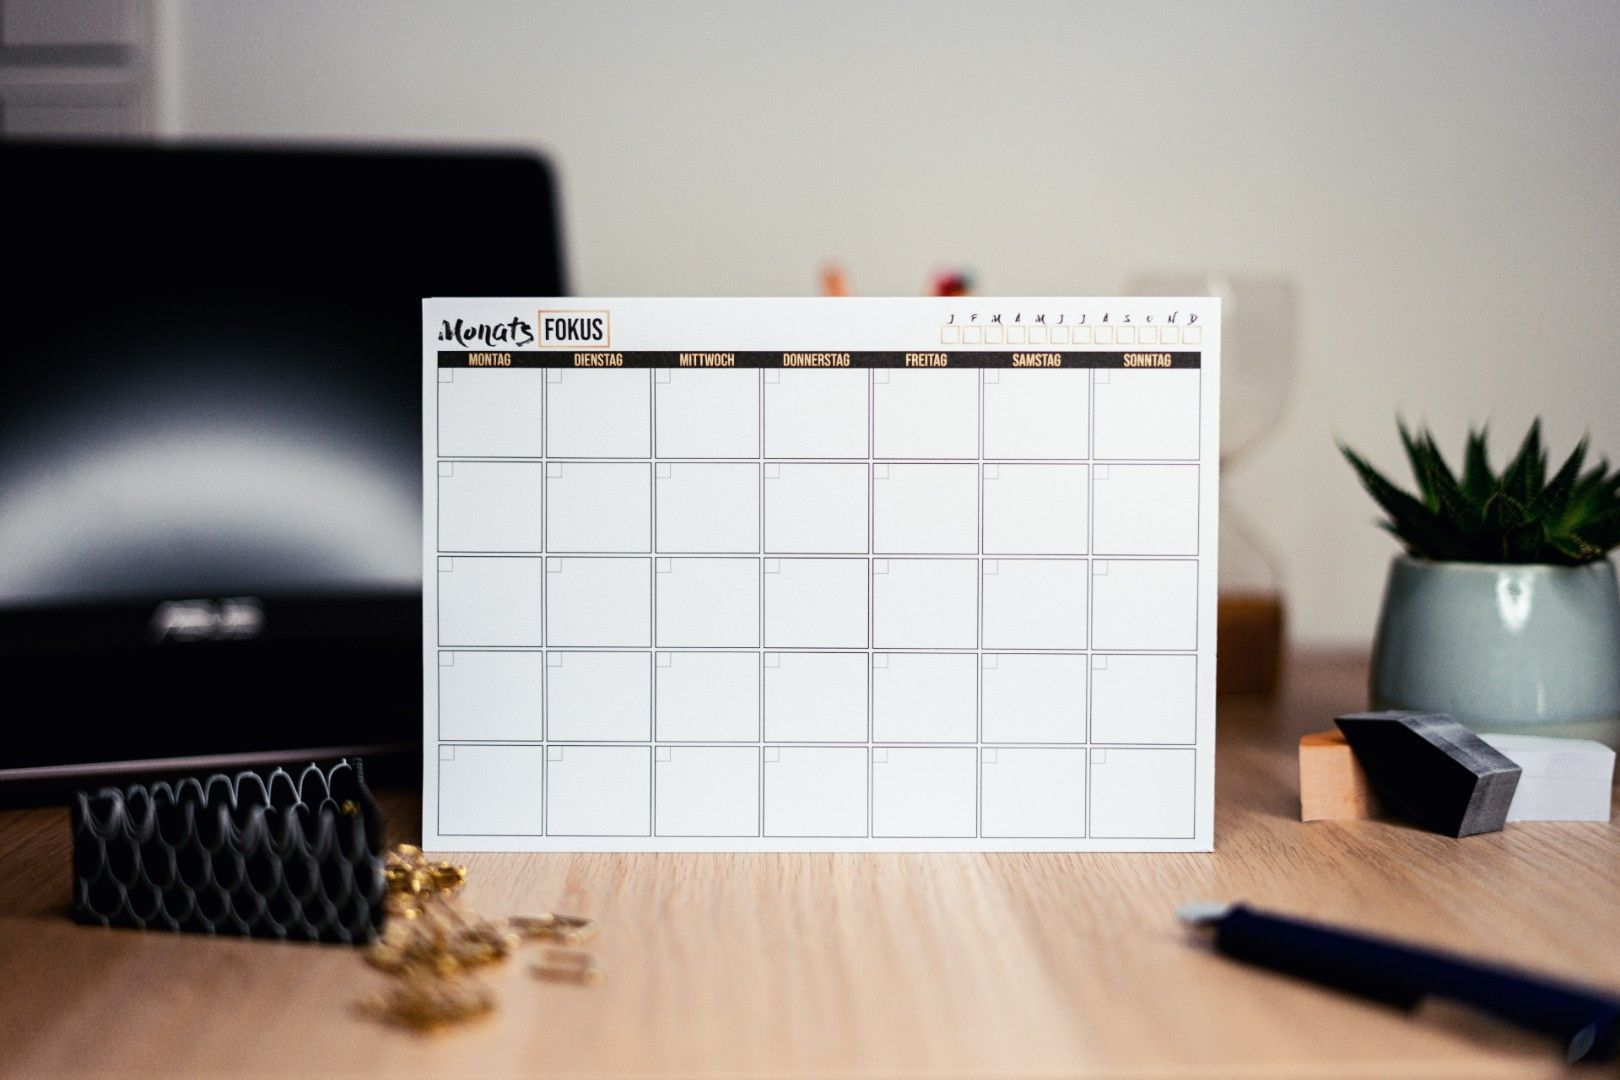 3 Simple Ways to Use a Calendar to Increase Your